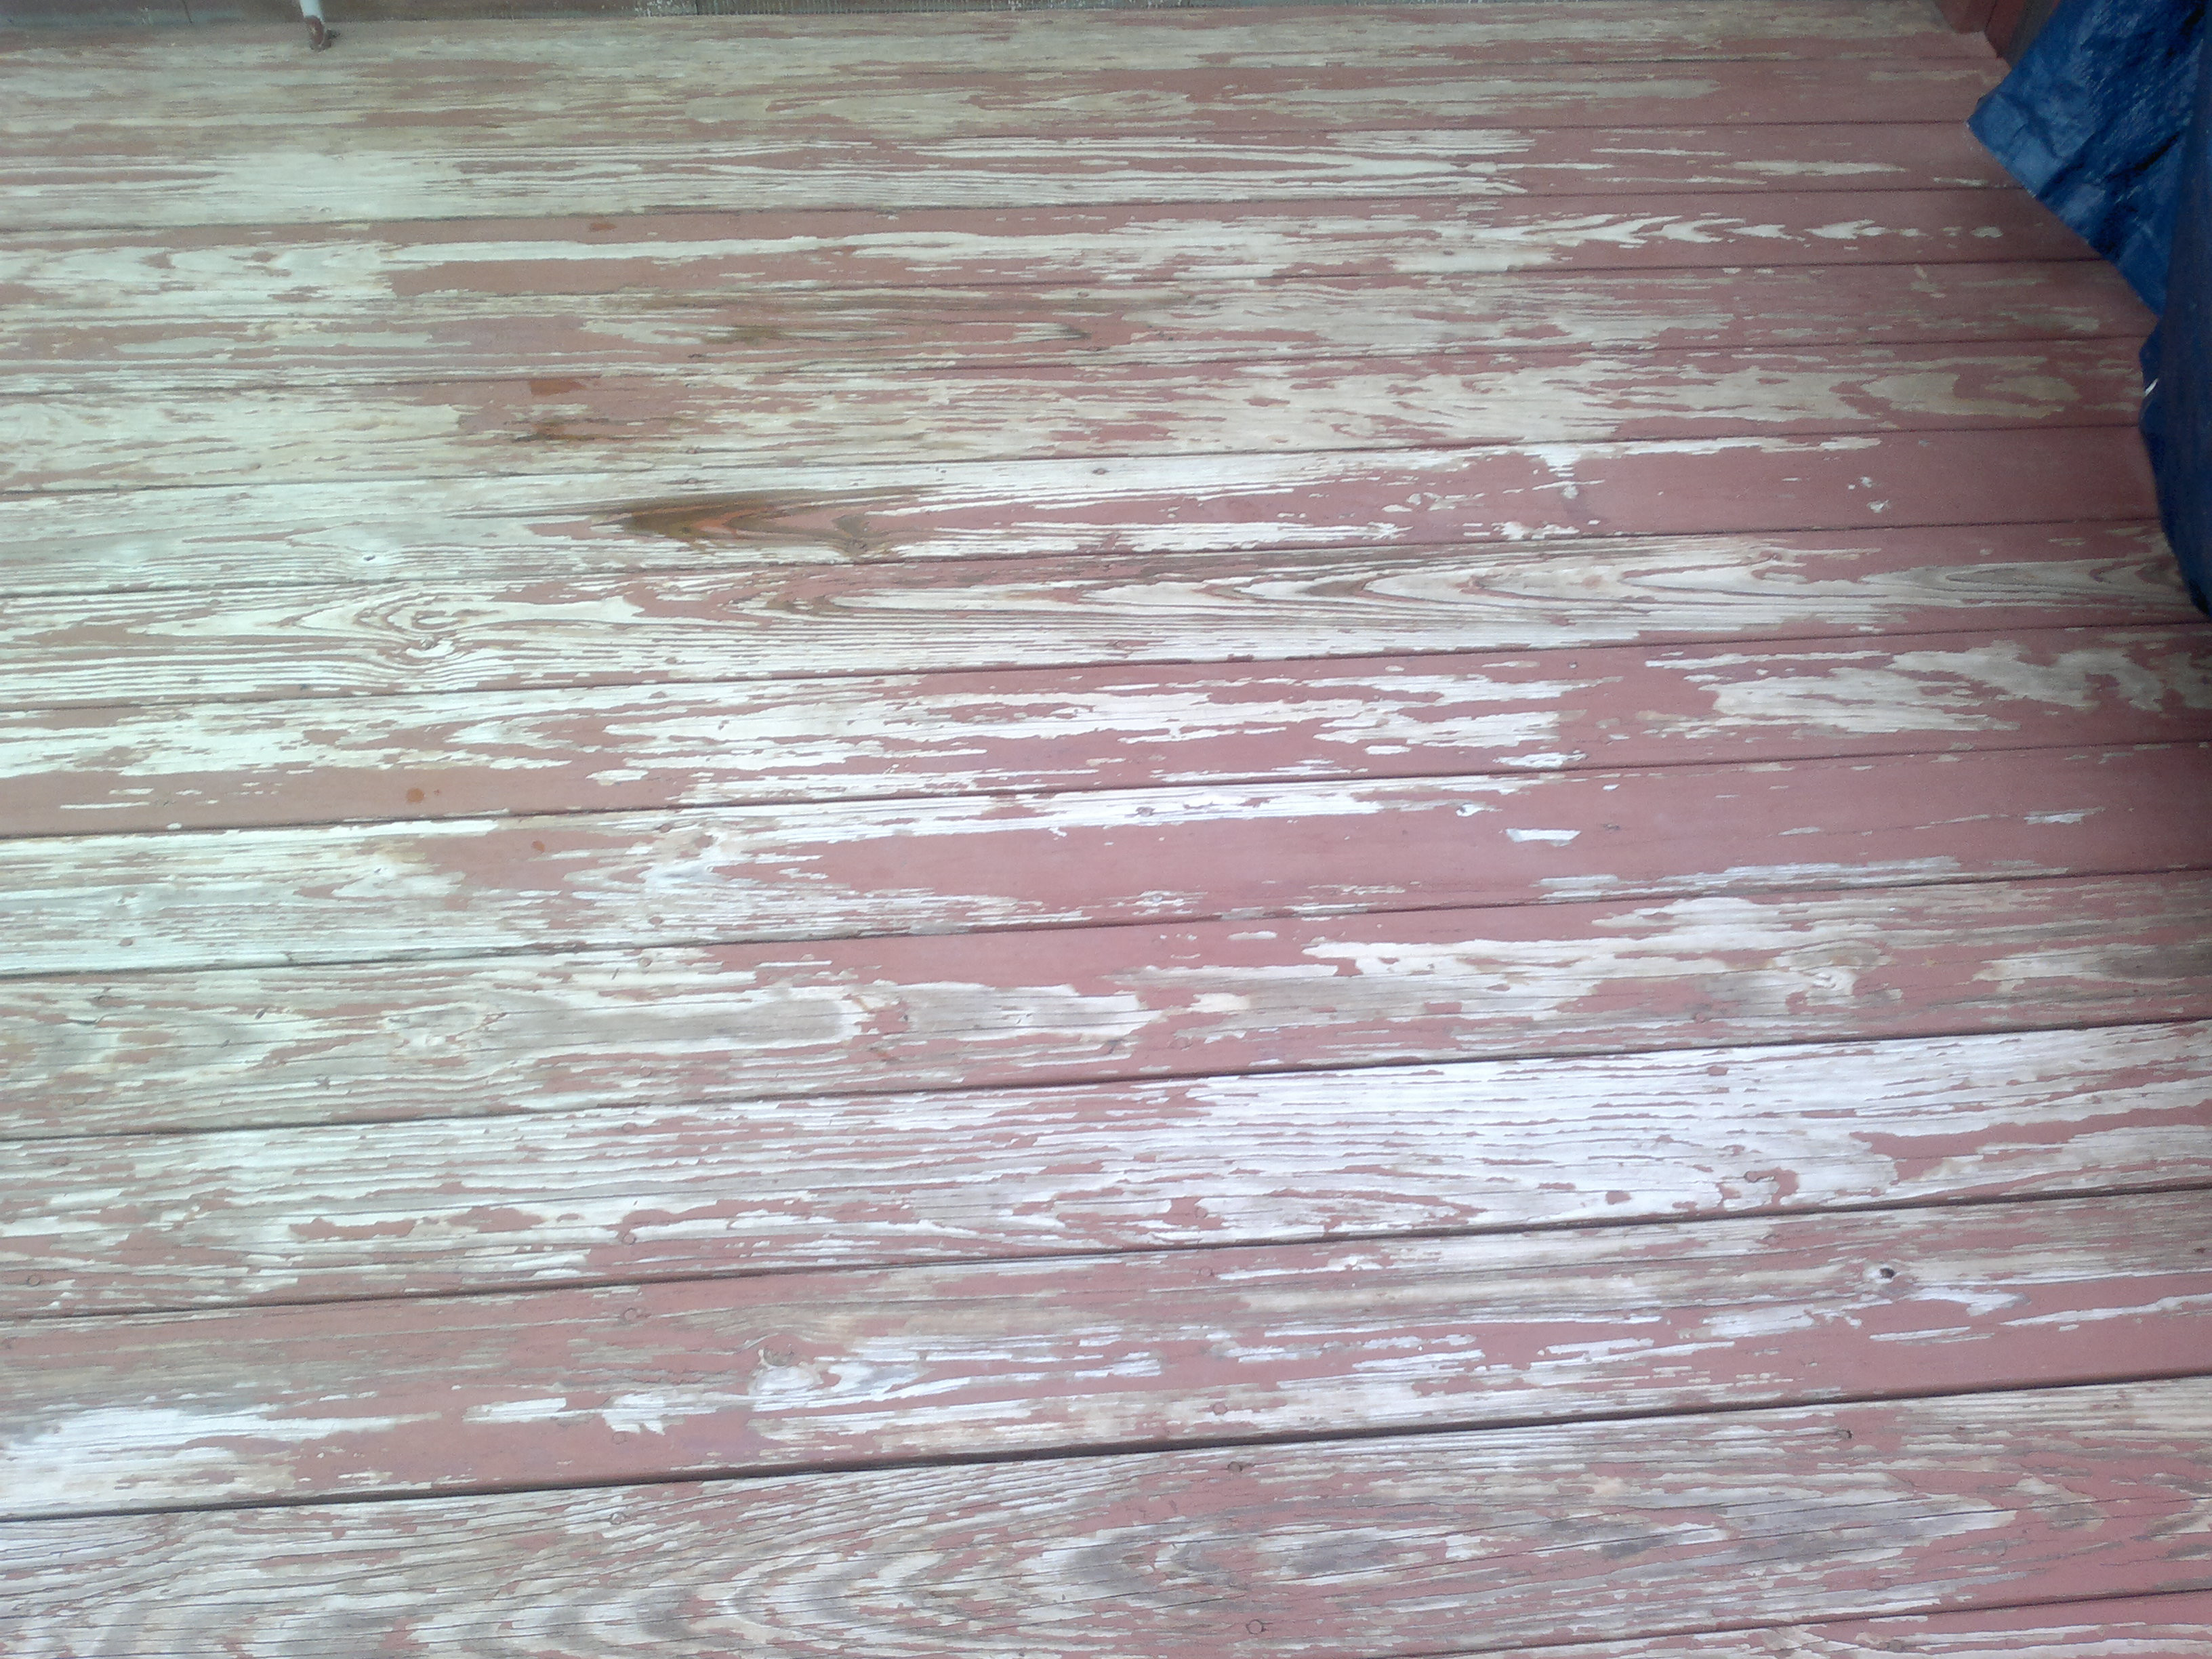 hardwood floor refinishing northern nj of best stain for an old deck best deck stain reviews ratings for 040520111781